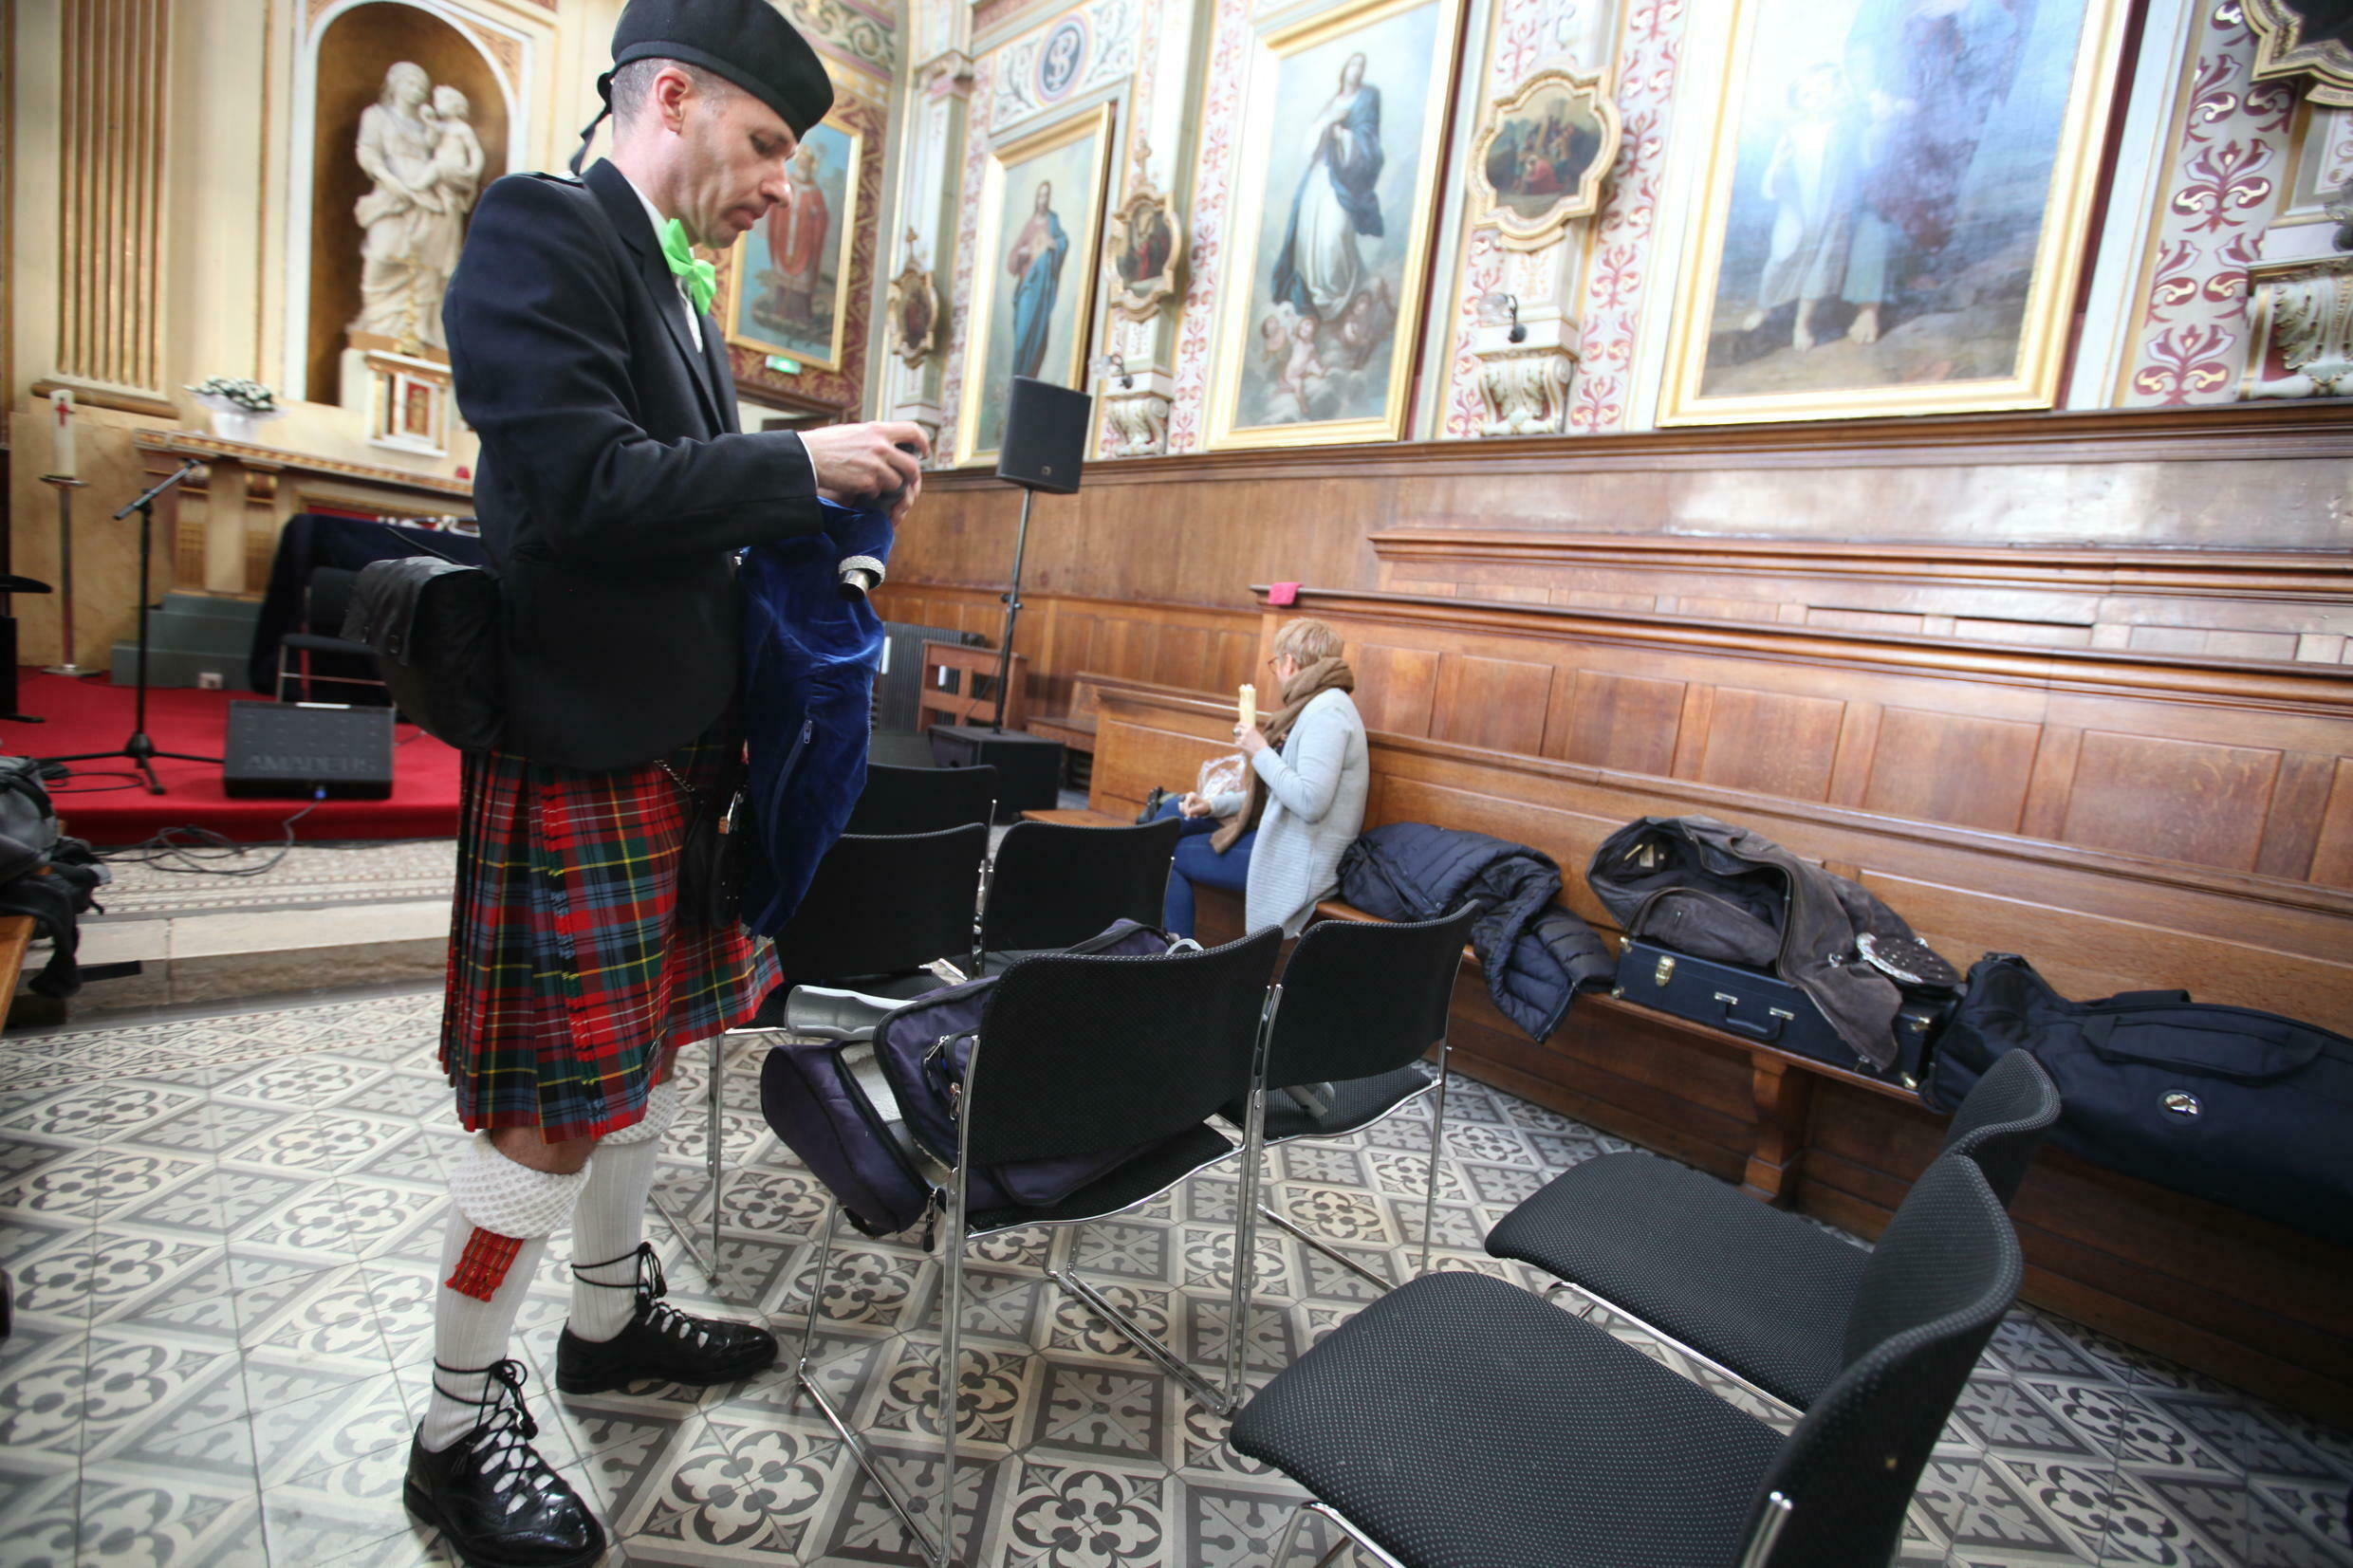 Bagpipers prepare for Saint Patrick's Day in the chapel of the Irish Cultural Centre.